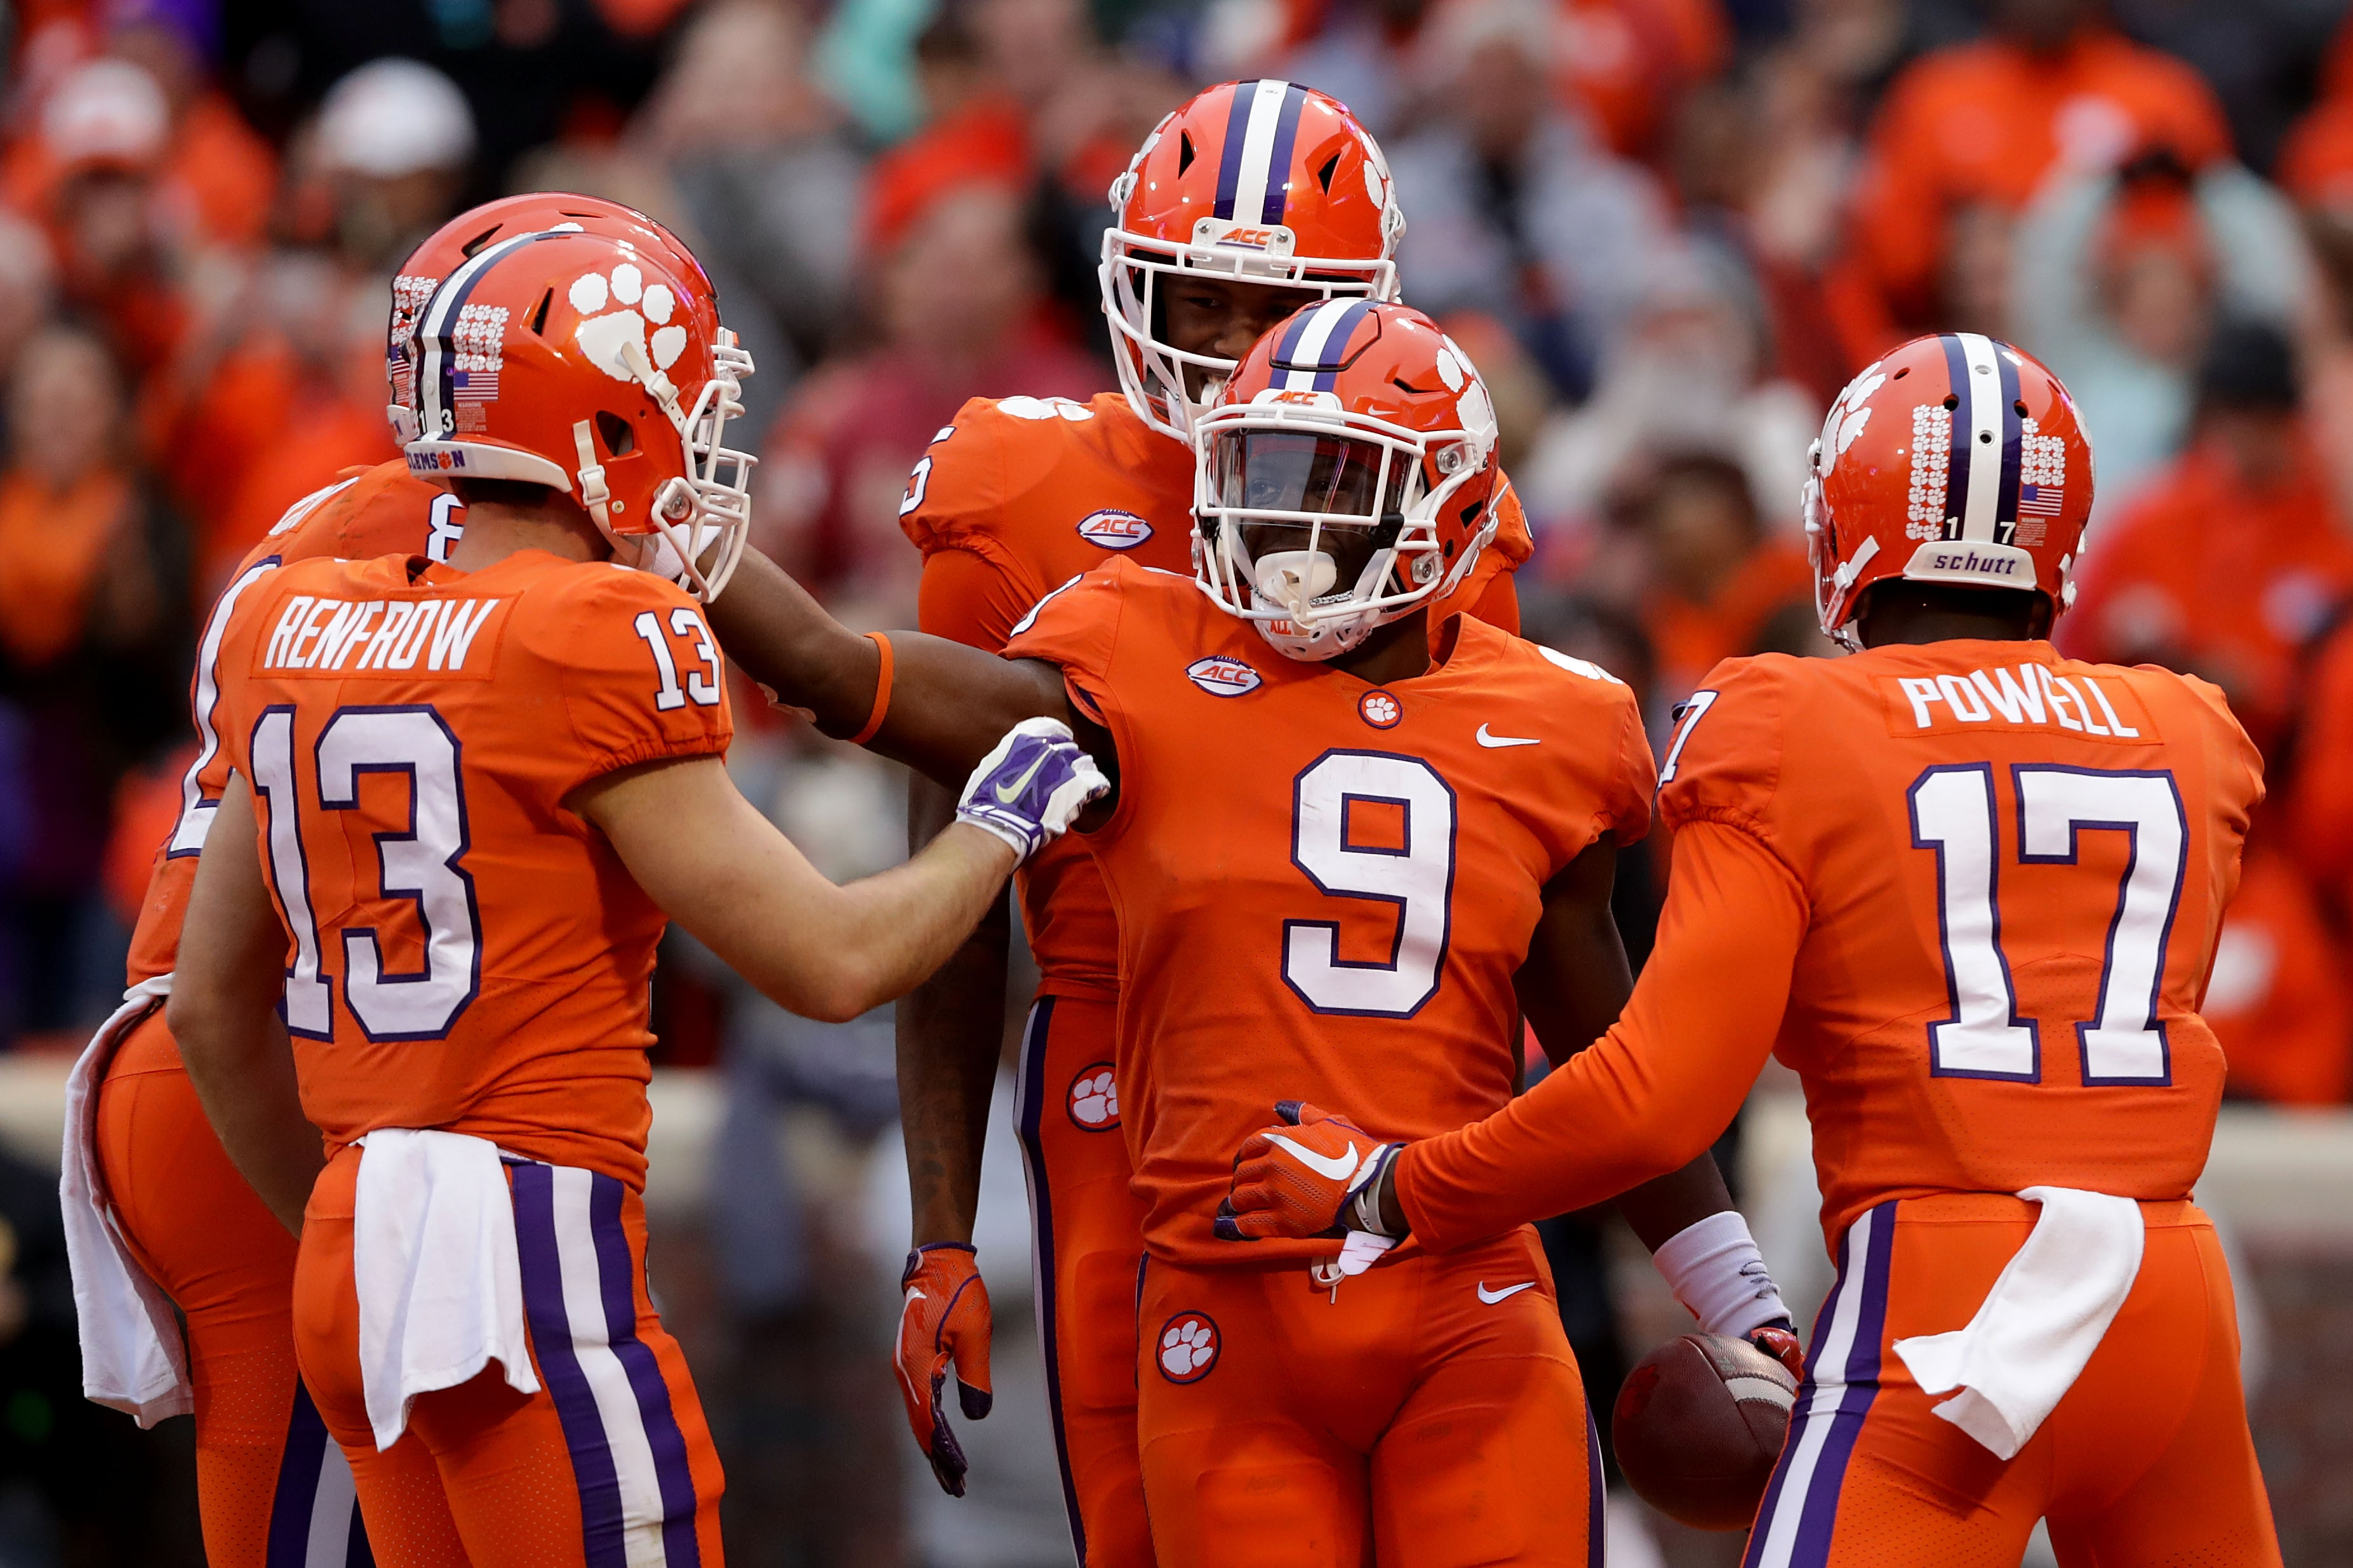 Clemson Football: 3 Players to watch vs. the Citadel - Page 2